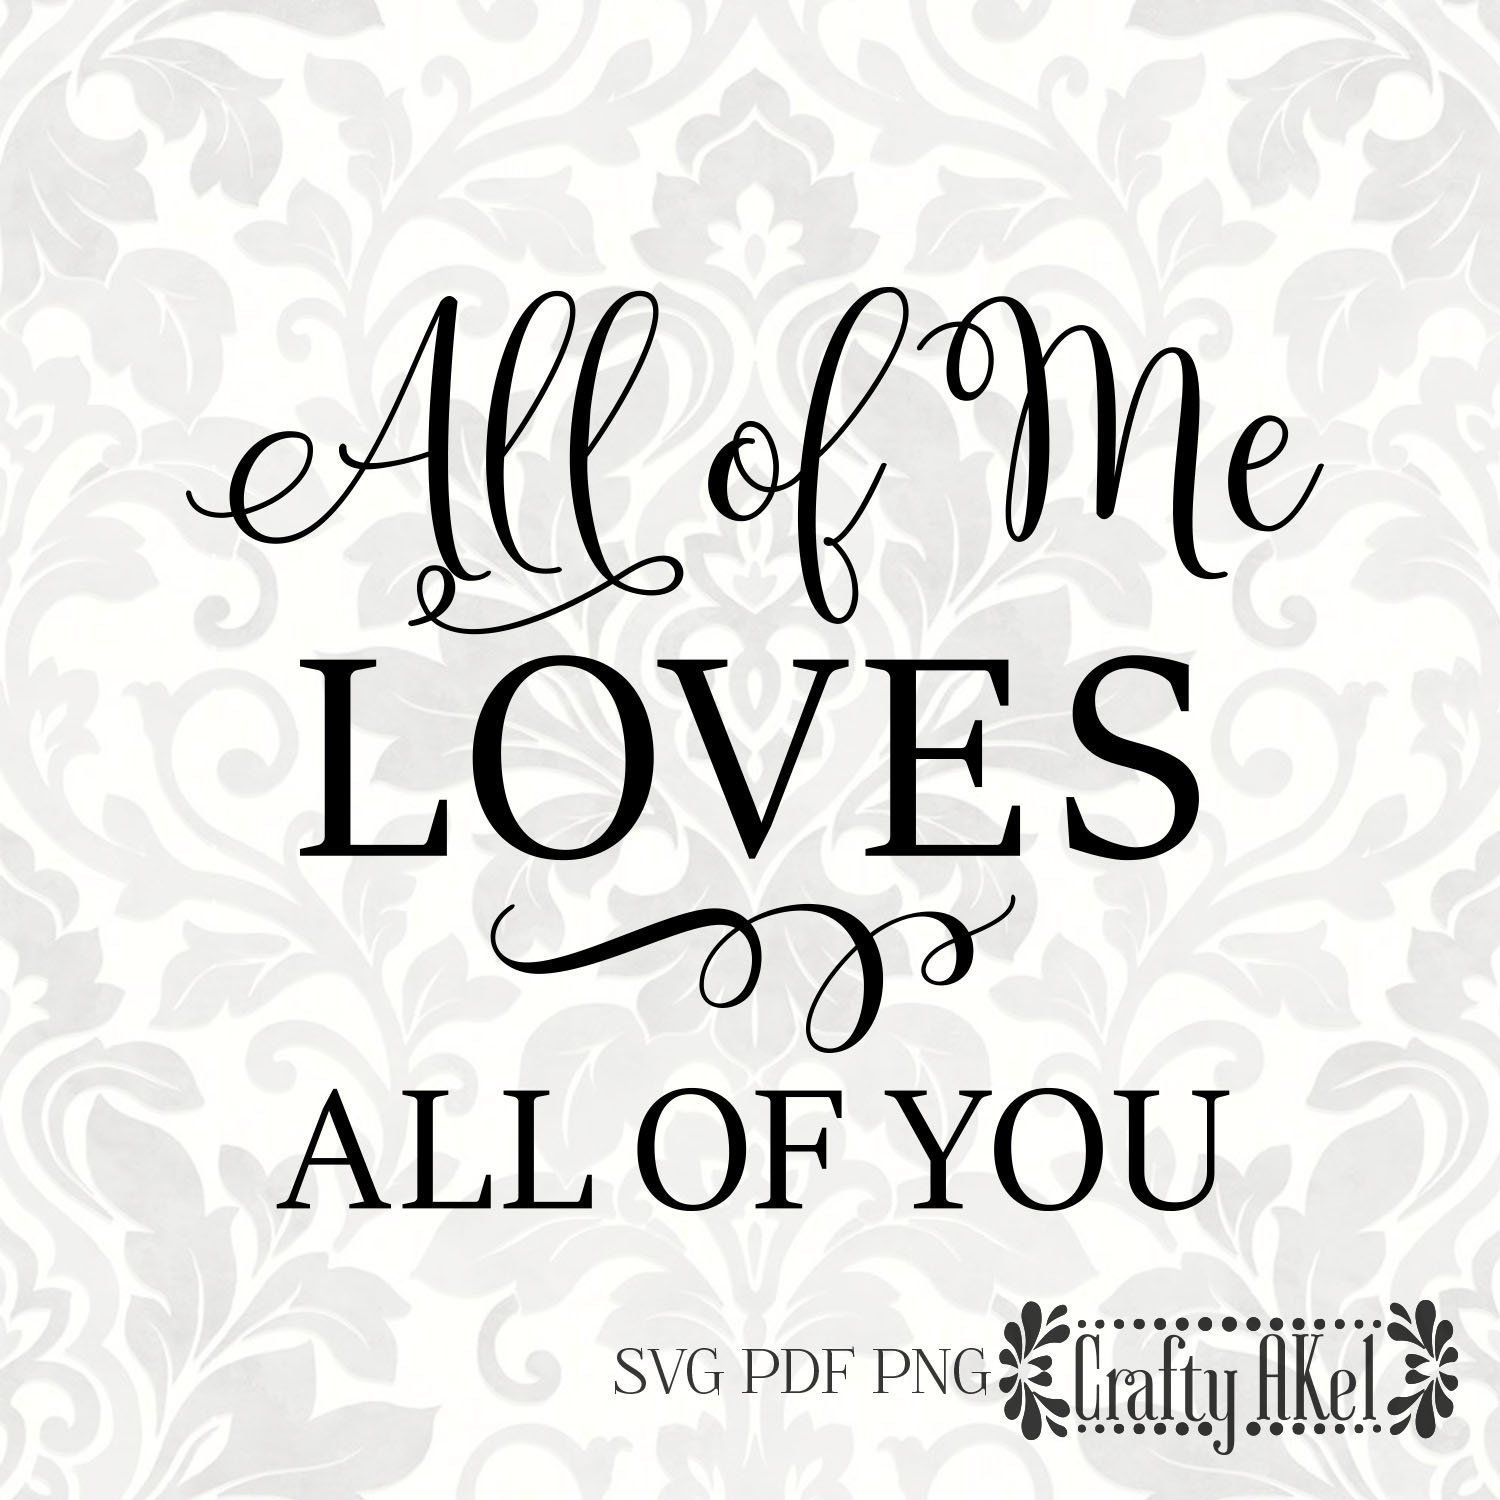 44++ All of me loves all of you svg trends